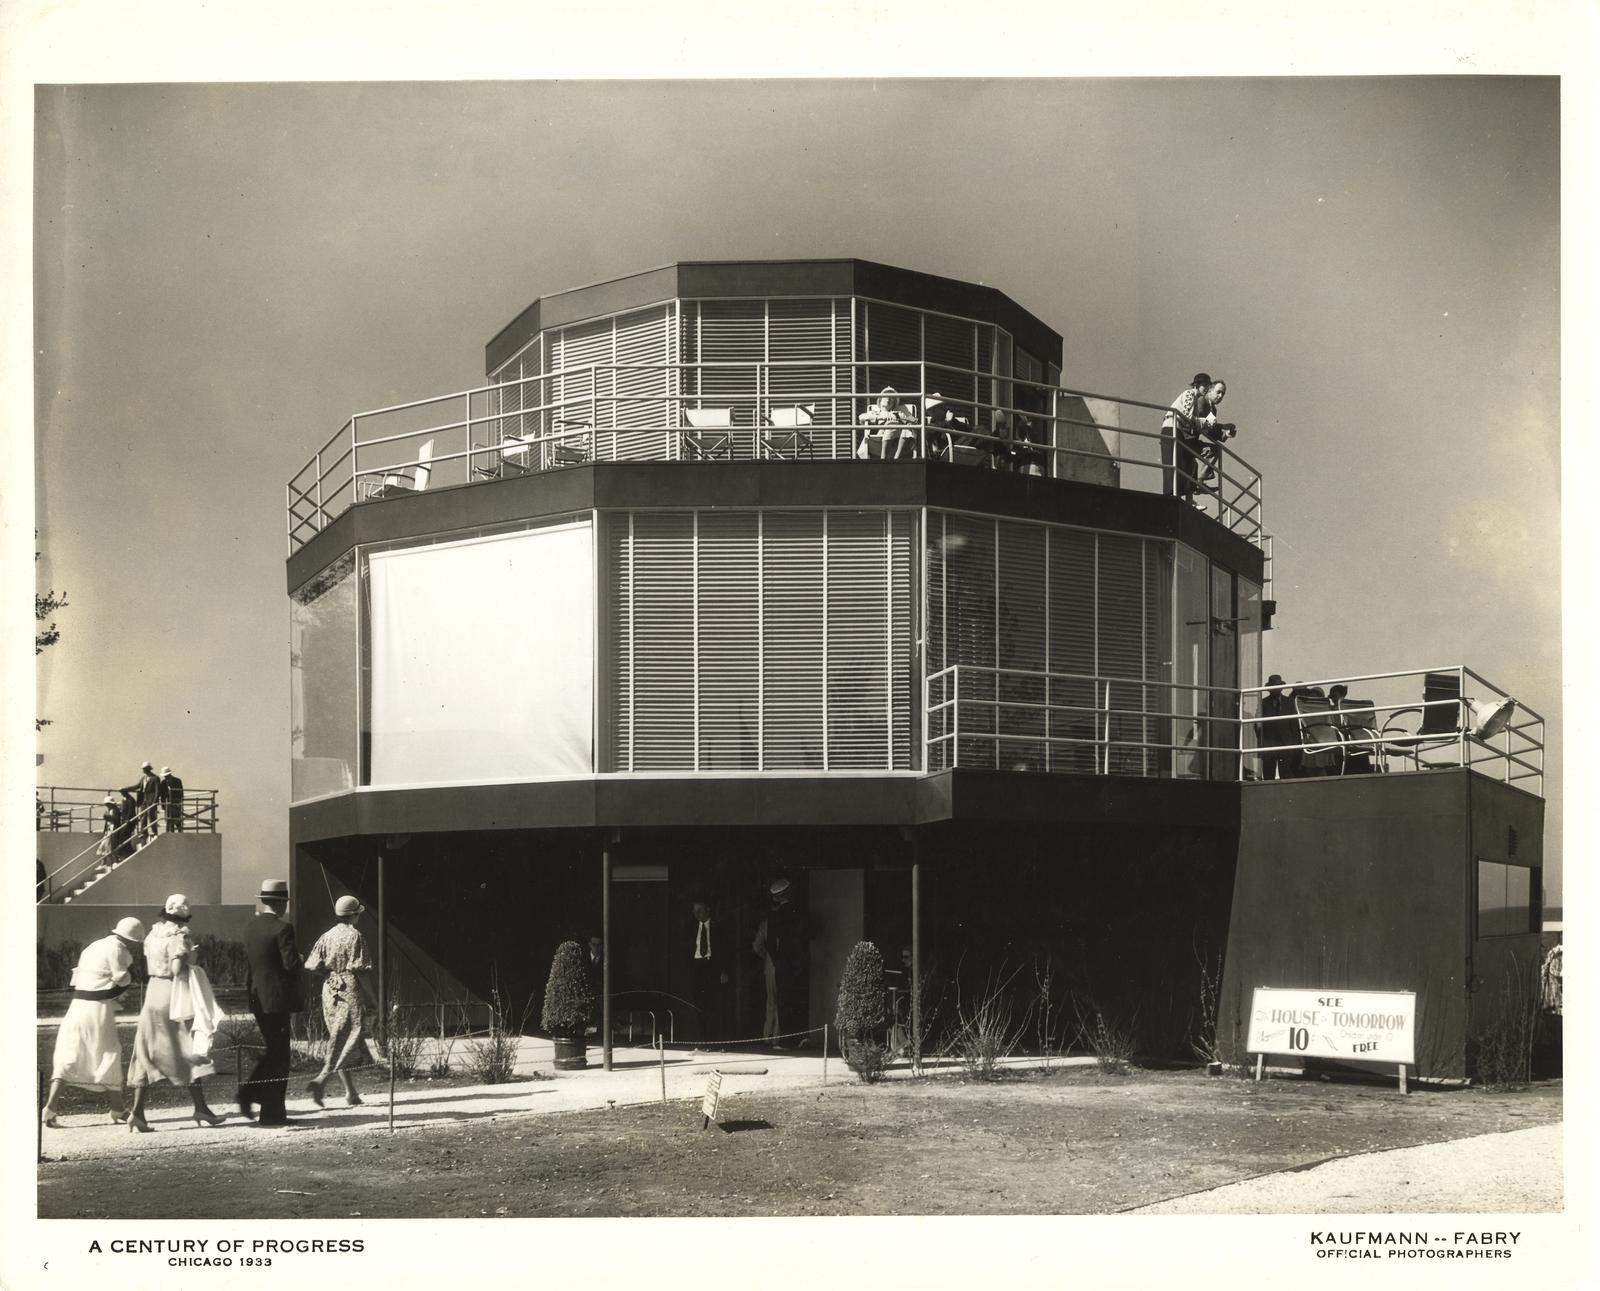 [House of Tomorrow at the Century of Progress International Exposition, 1933-1934.]